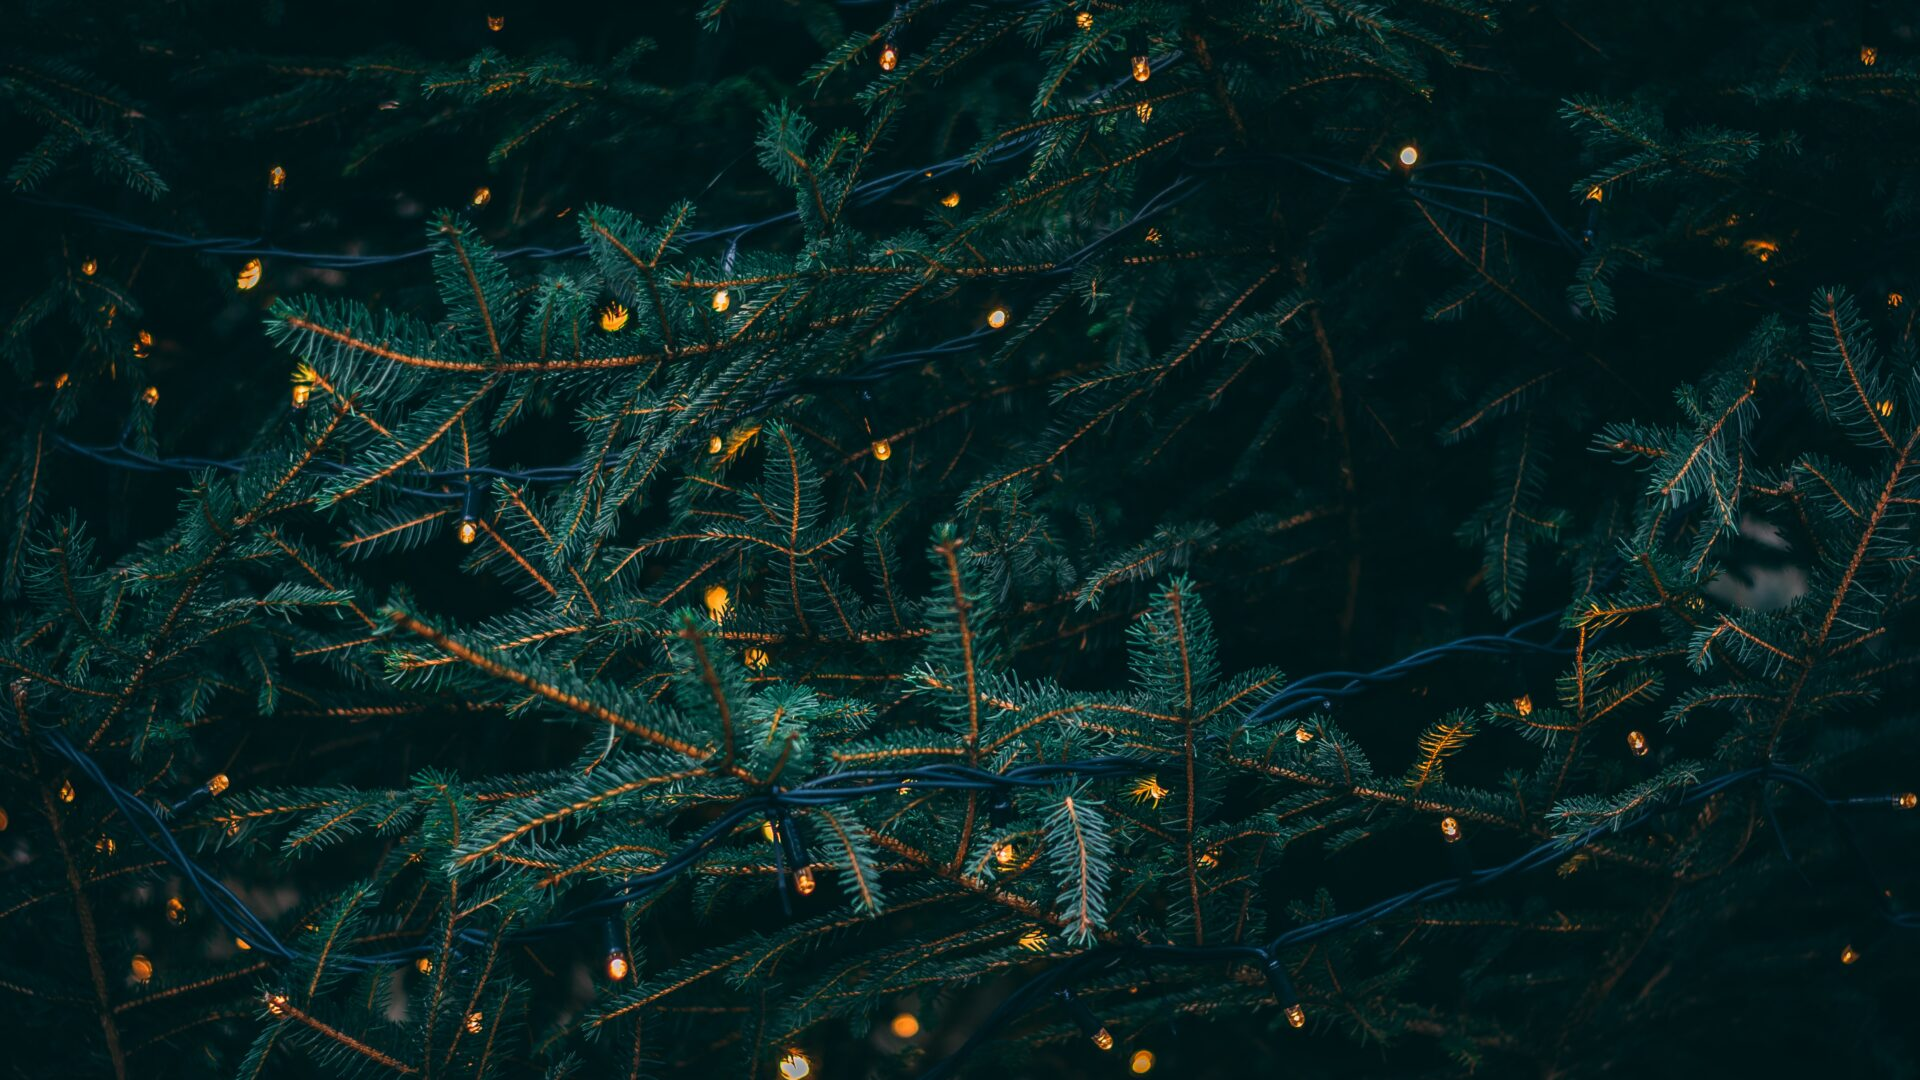 Evergreen tree with lights